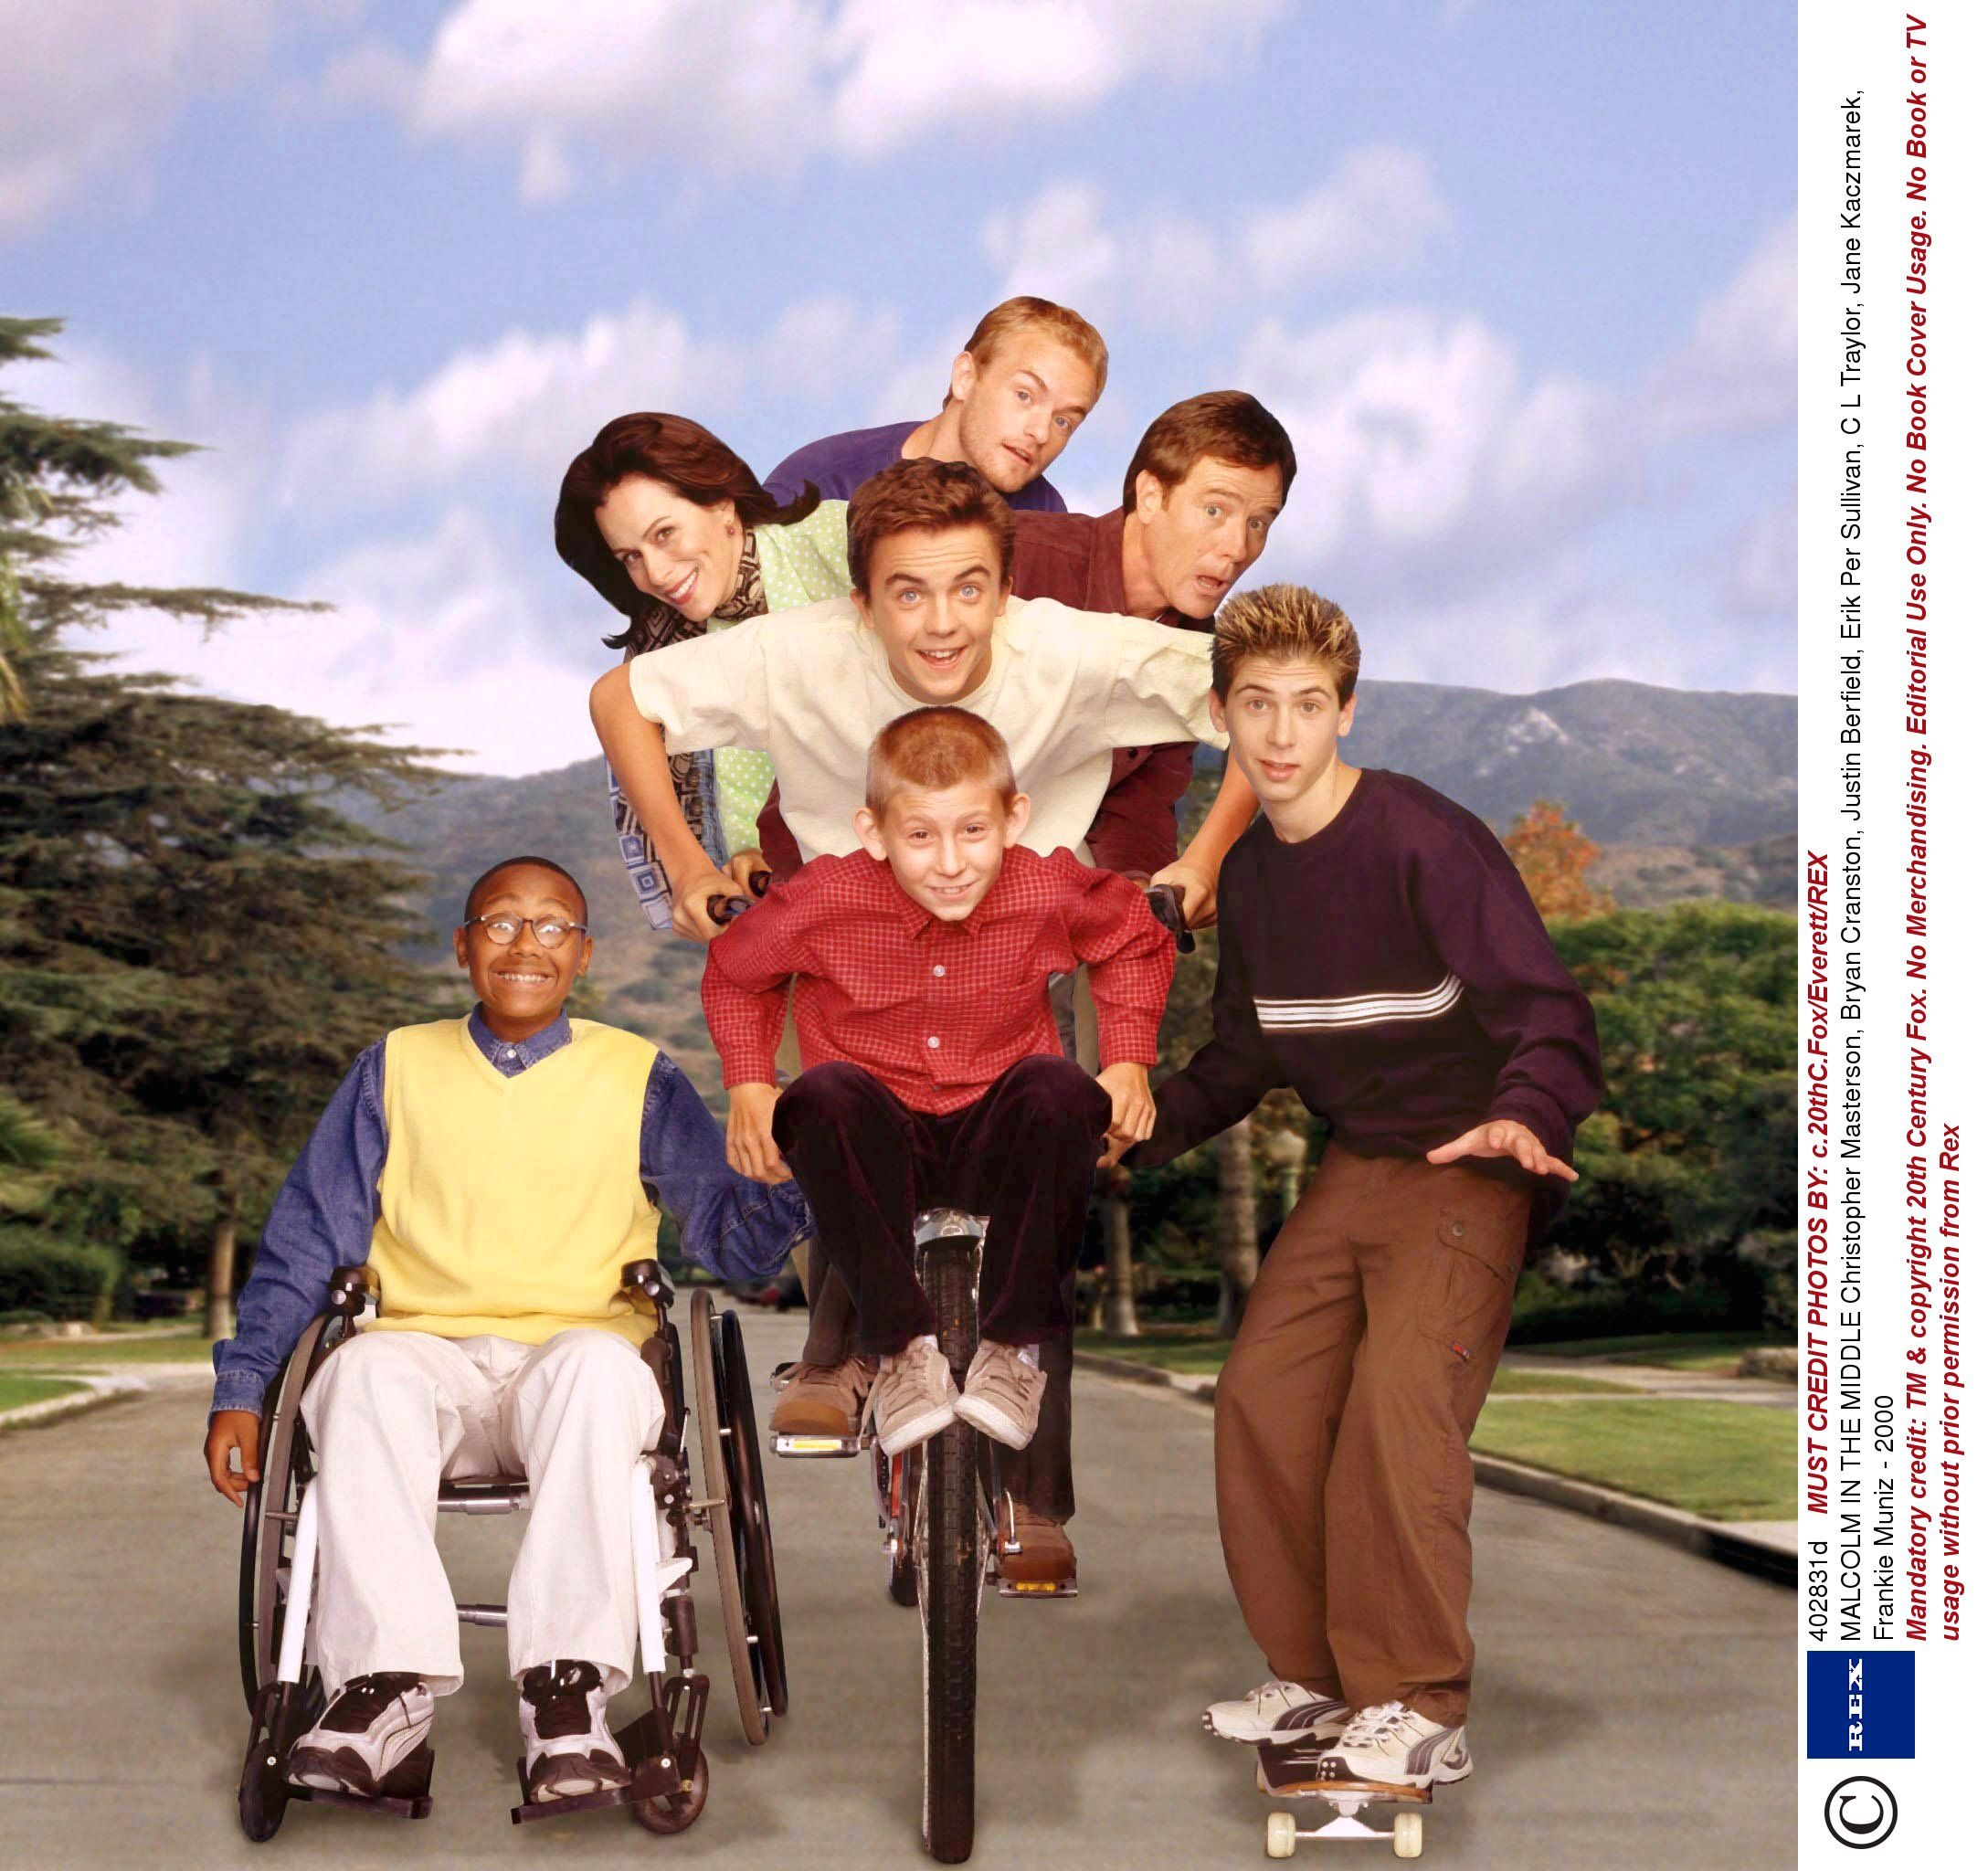 Malcolm In The Middle What Do They Look Like Now Frankie Muniz Justin Berfield And The Rest